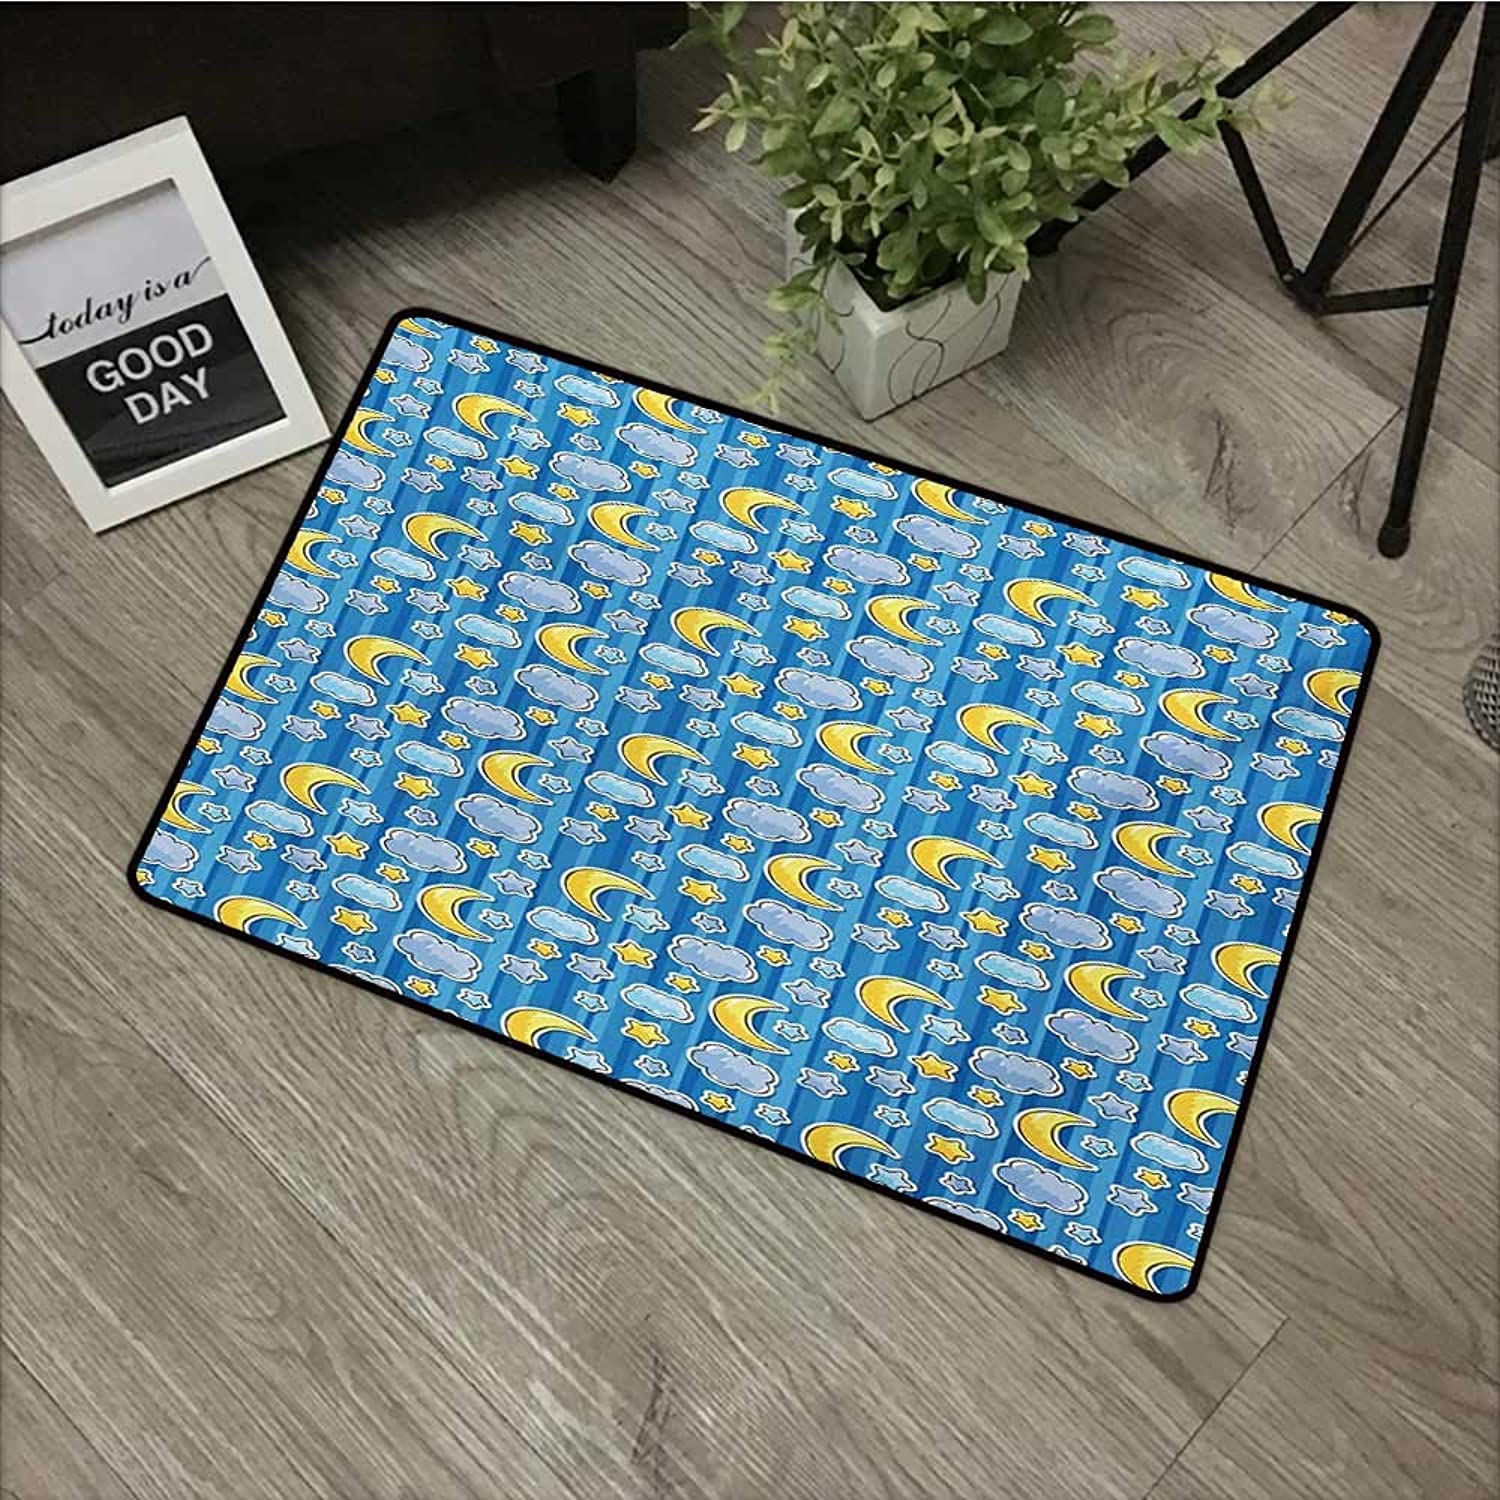 Clear printed pattern door mat W35 x L59 INCH Baby,Abstract Skyline with Stars Clouds and Crescent Moon greenical Striped Backdrop Doodle,bluee Yellow Non-slip, with non-slip backing,Non-slip Door Mat C